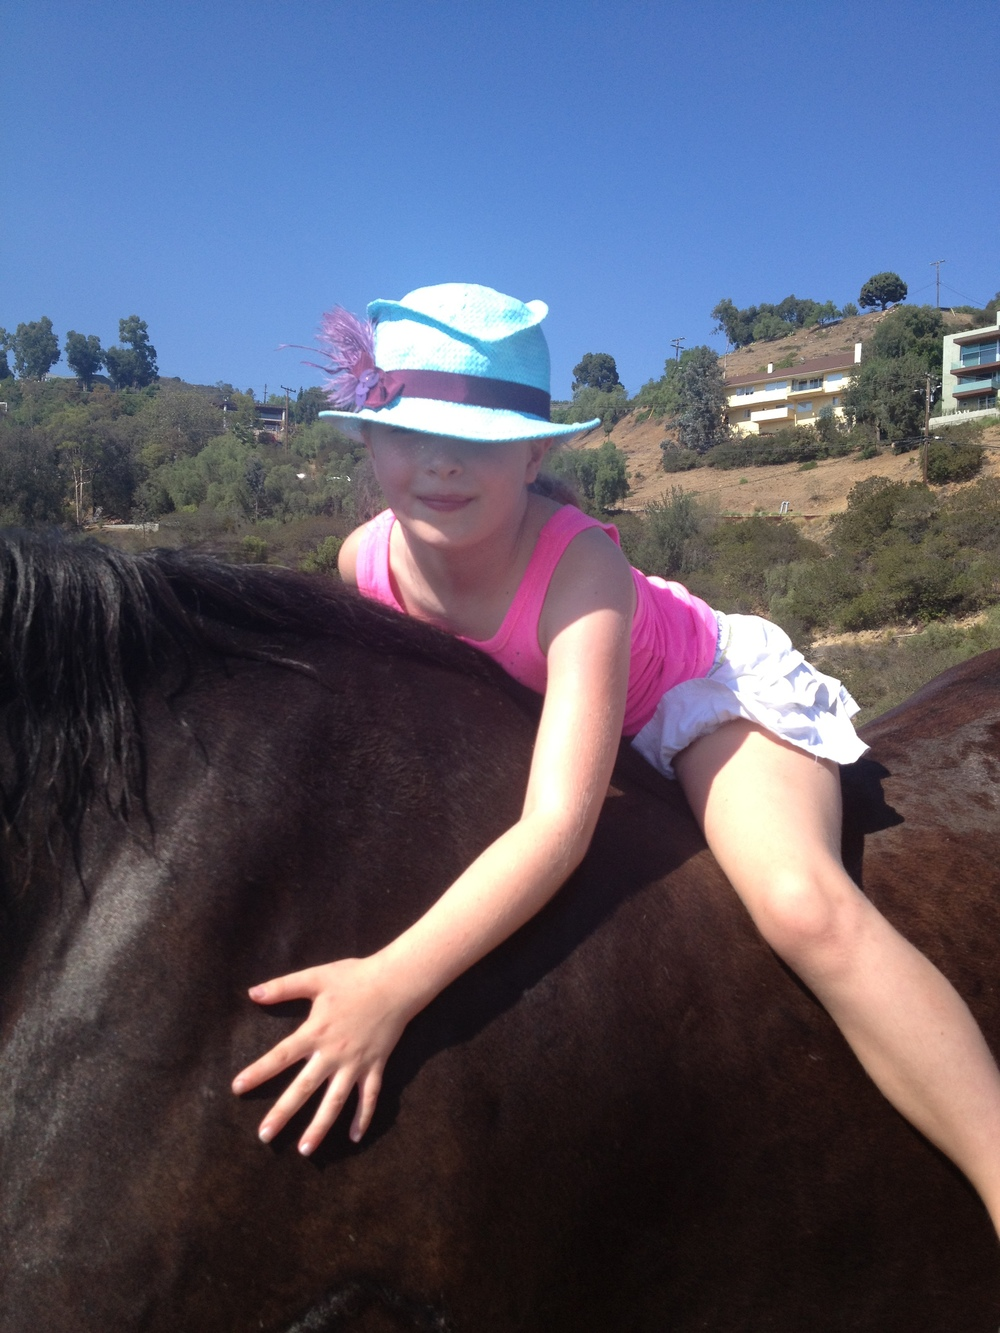 Before each ride the children were encouraged to greet the horse by hugging him and whispering a hello.